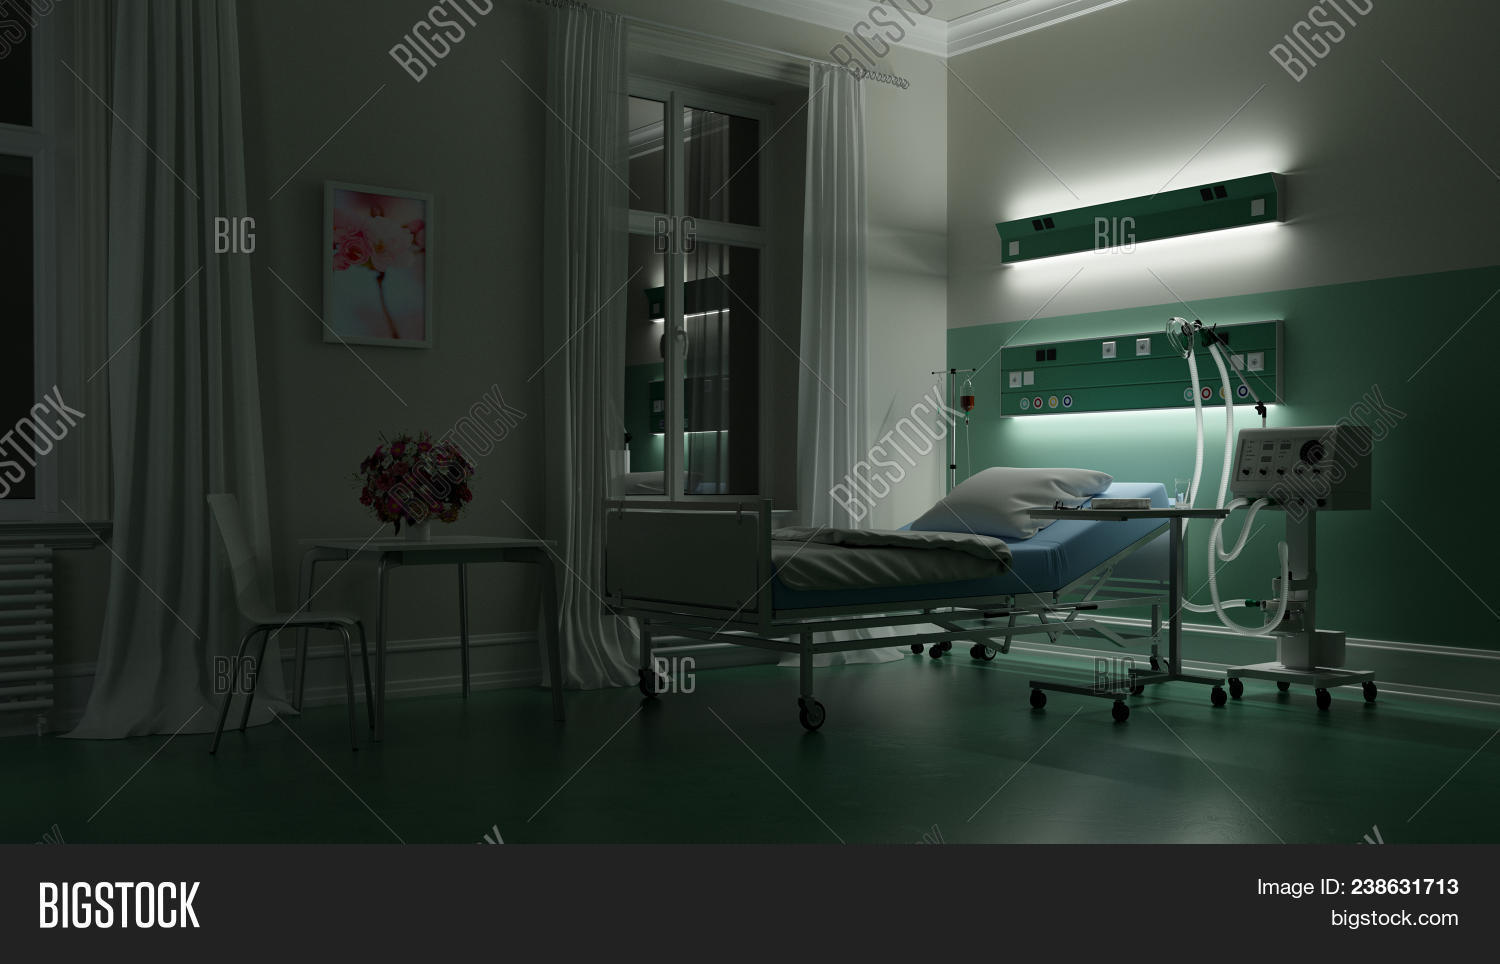 Empty Bed Hospital Image Amp Photo Free Trial Bigstock